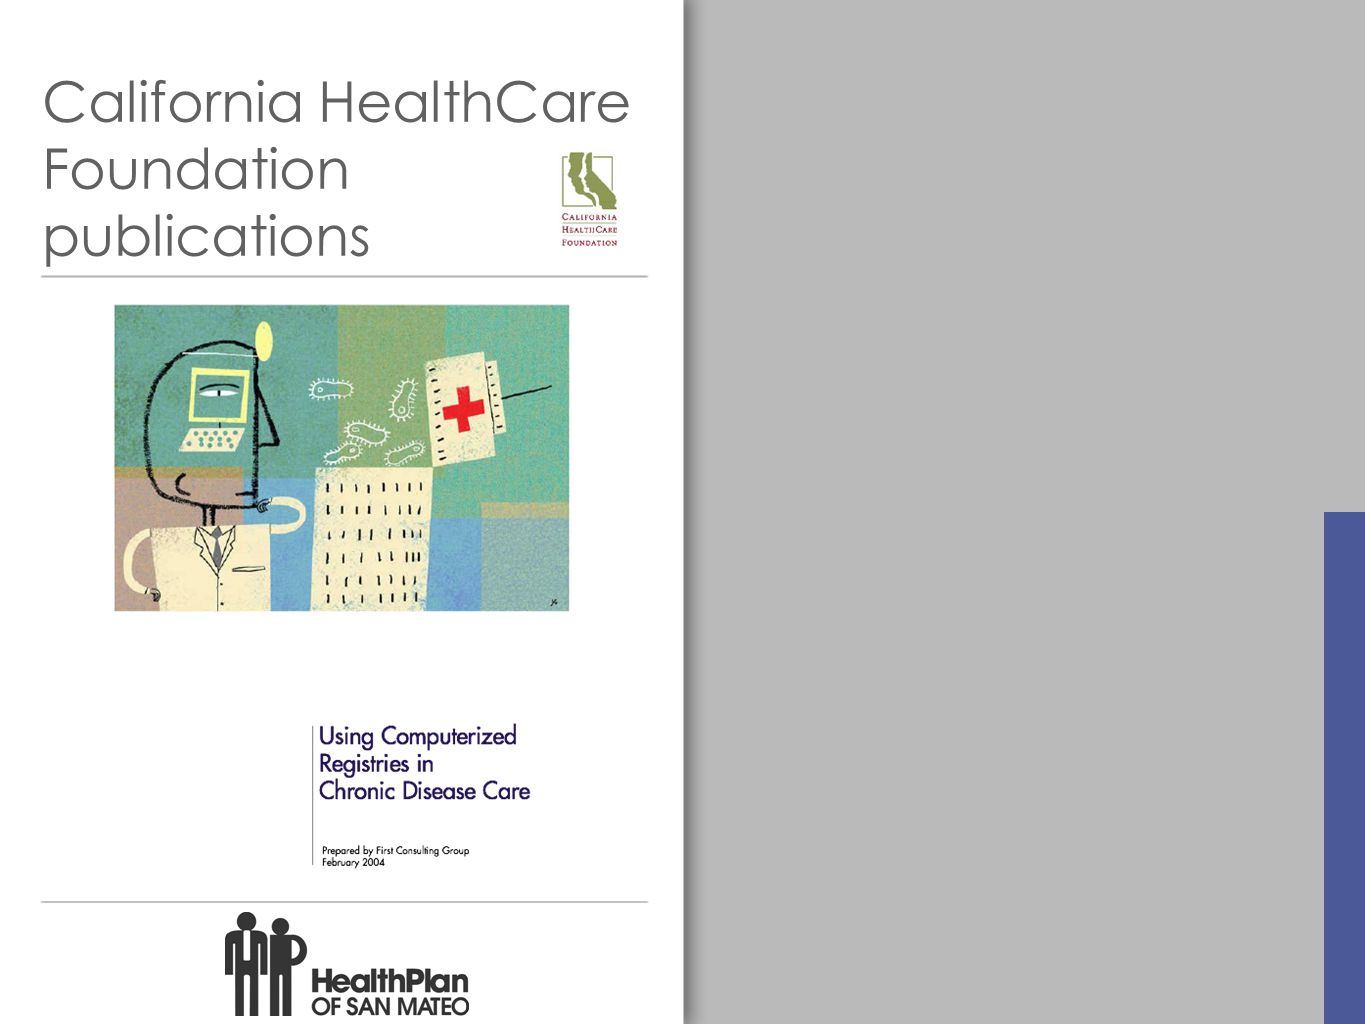 California HealthCare Foundation publications